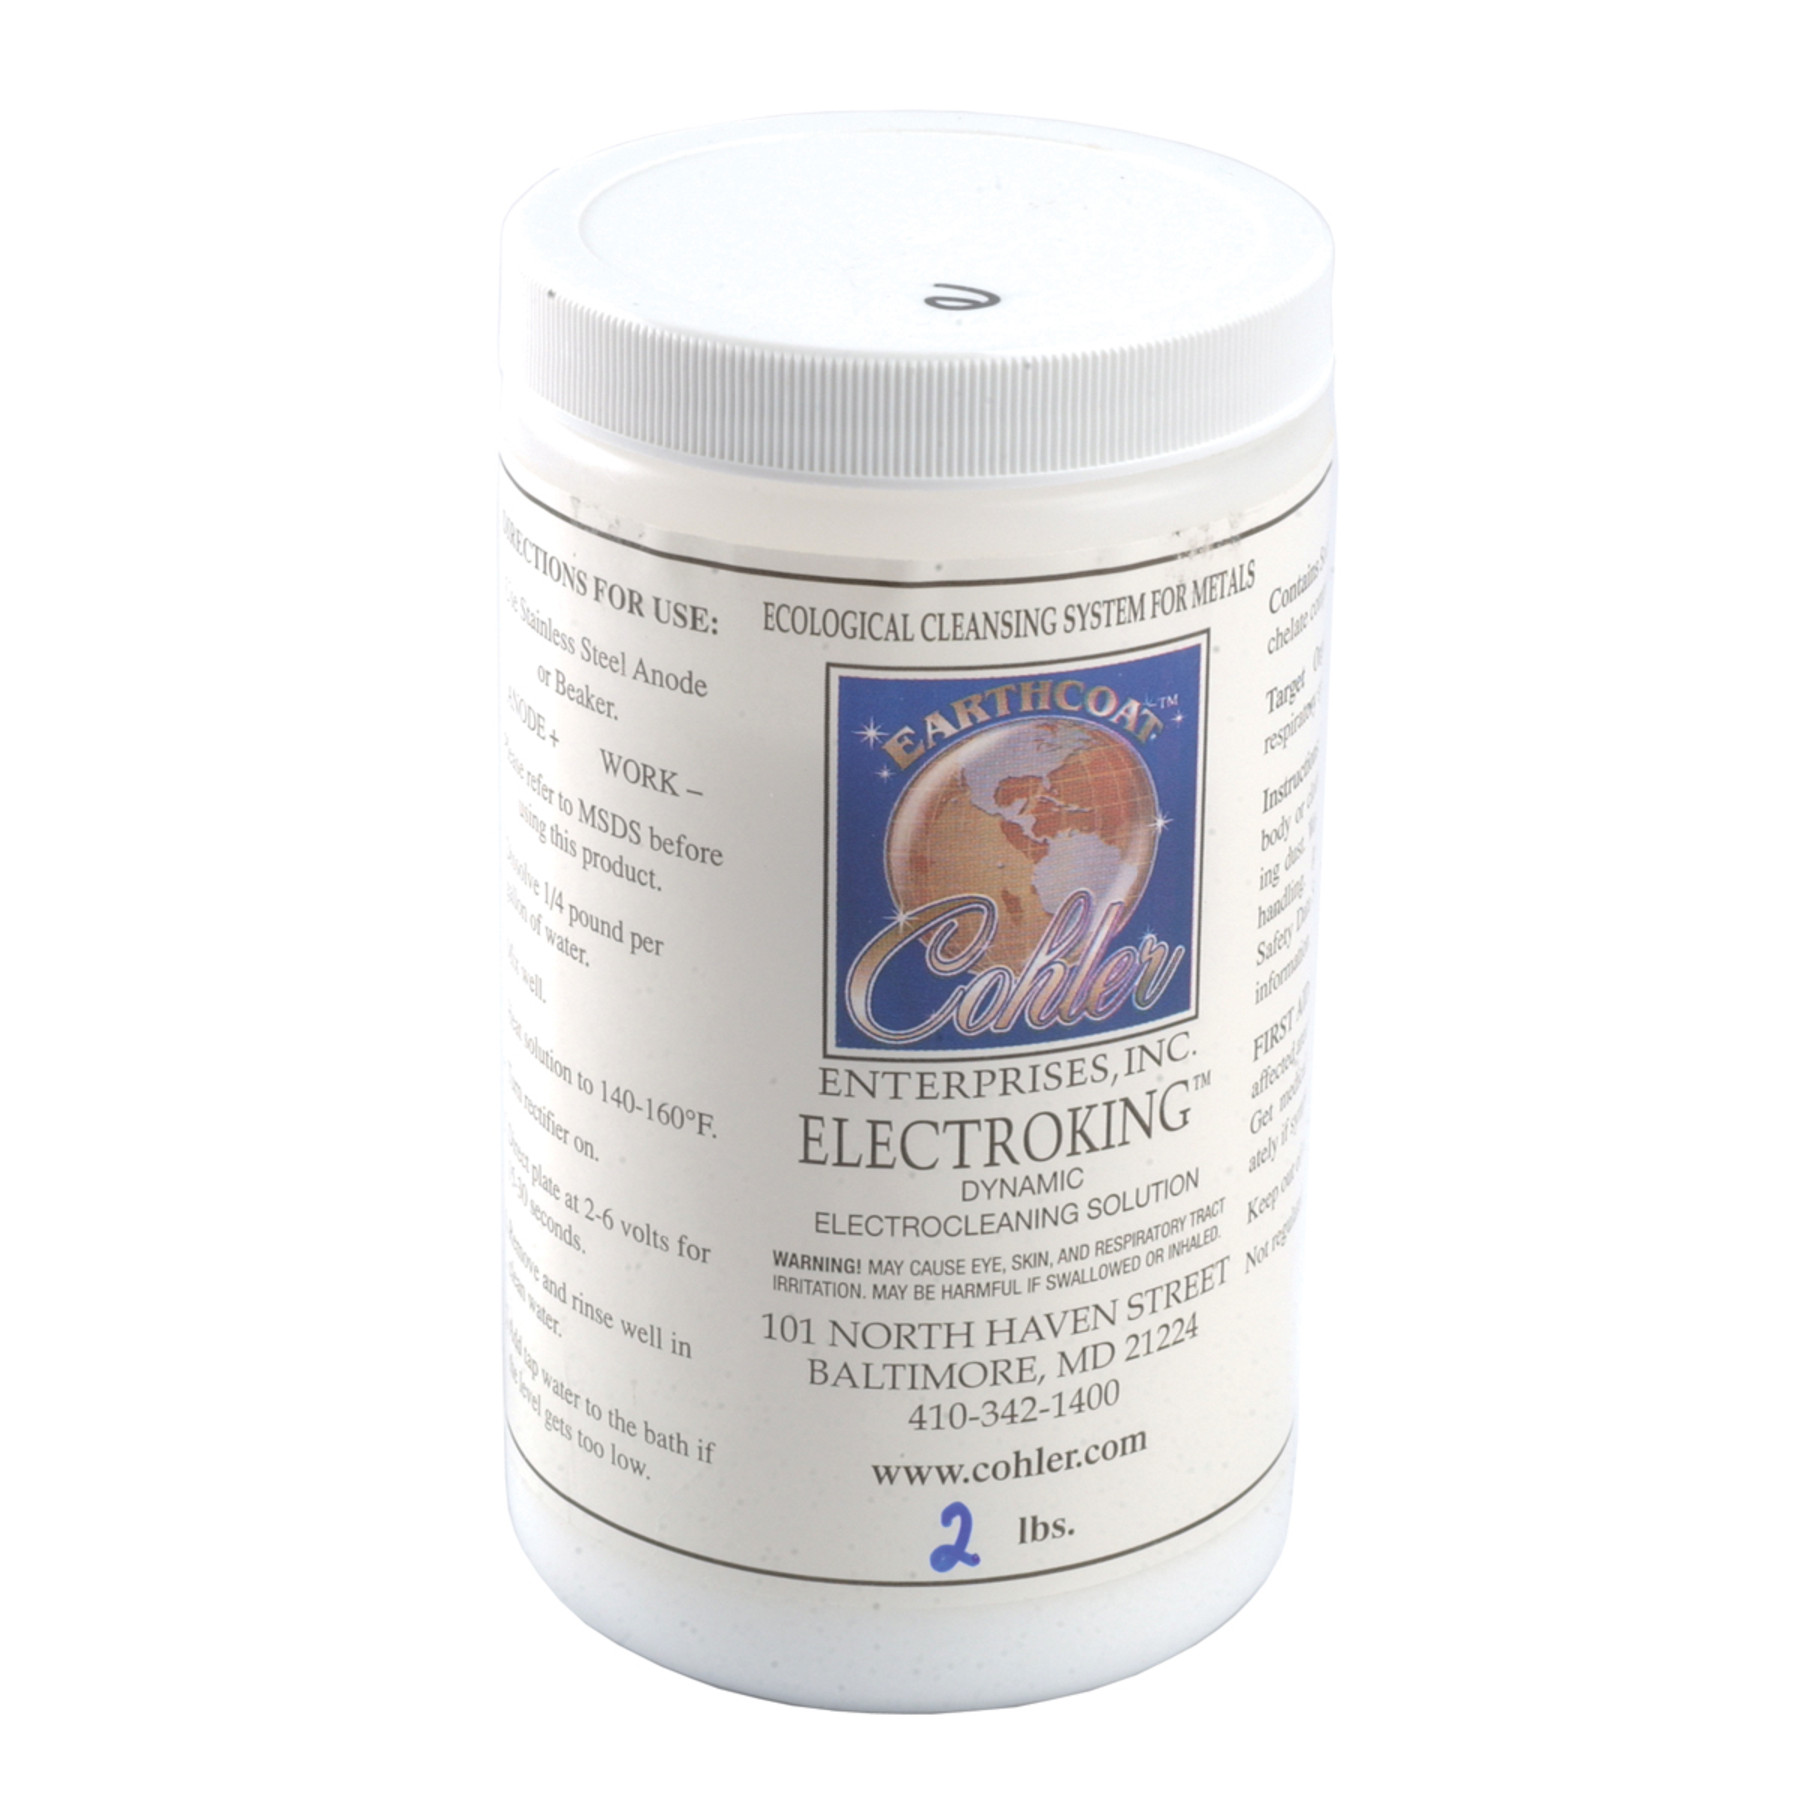 EarthCoat ElectroKing Electrocleaning Concentrate Powder (2